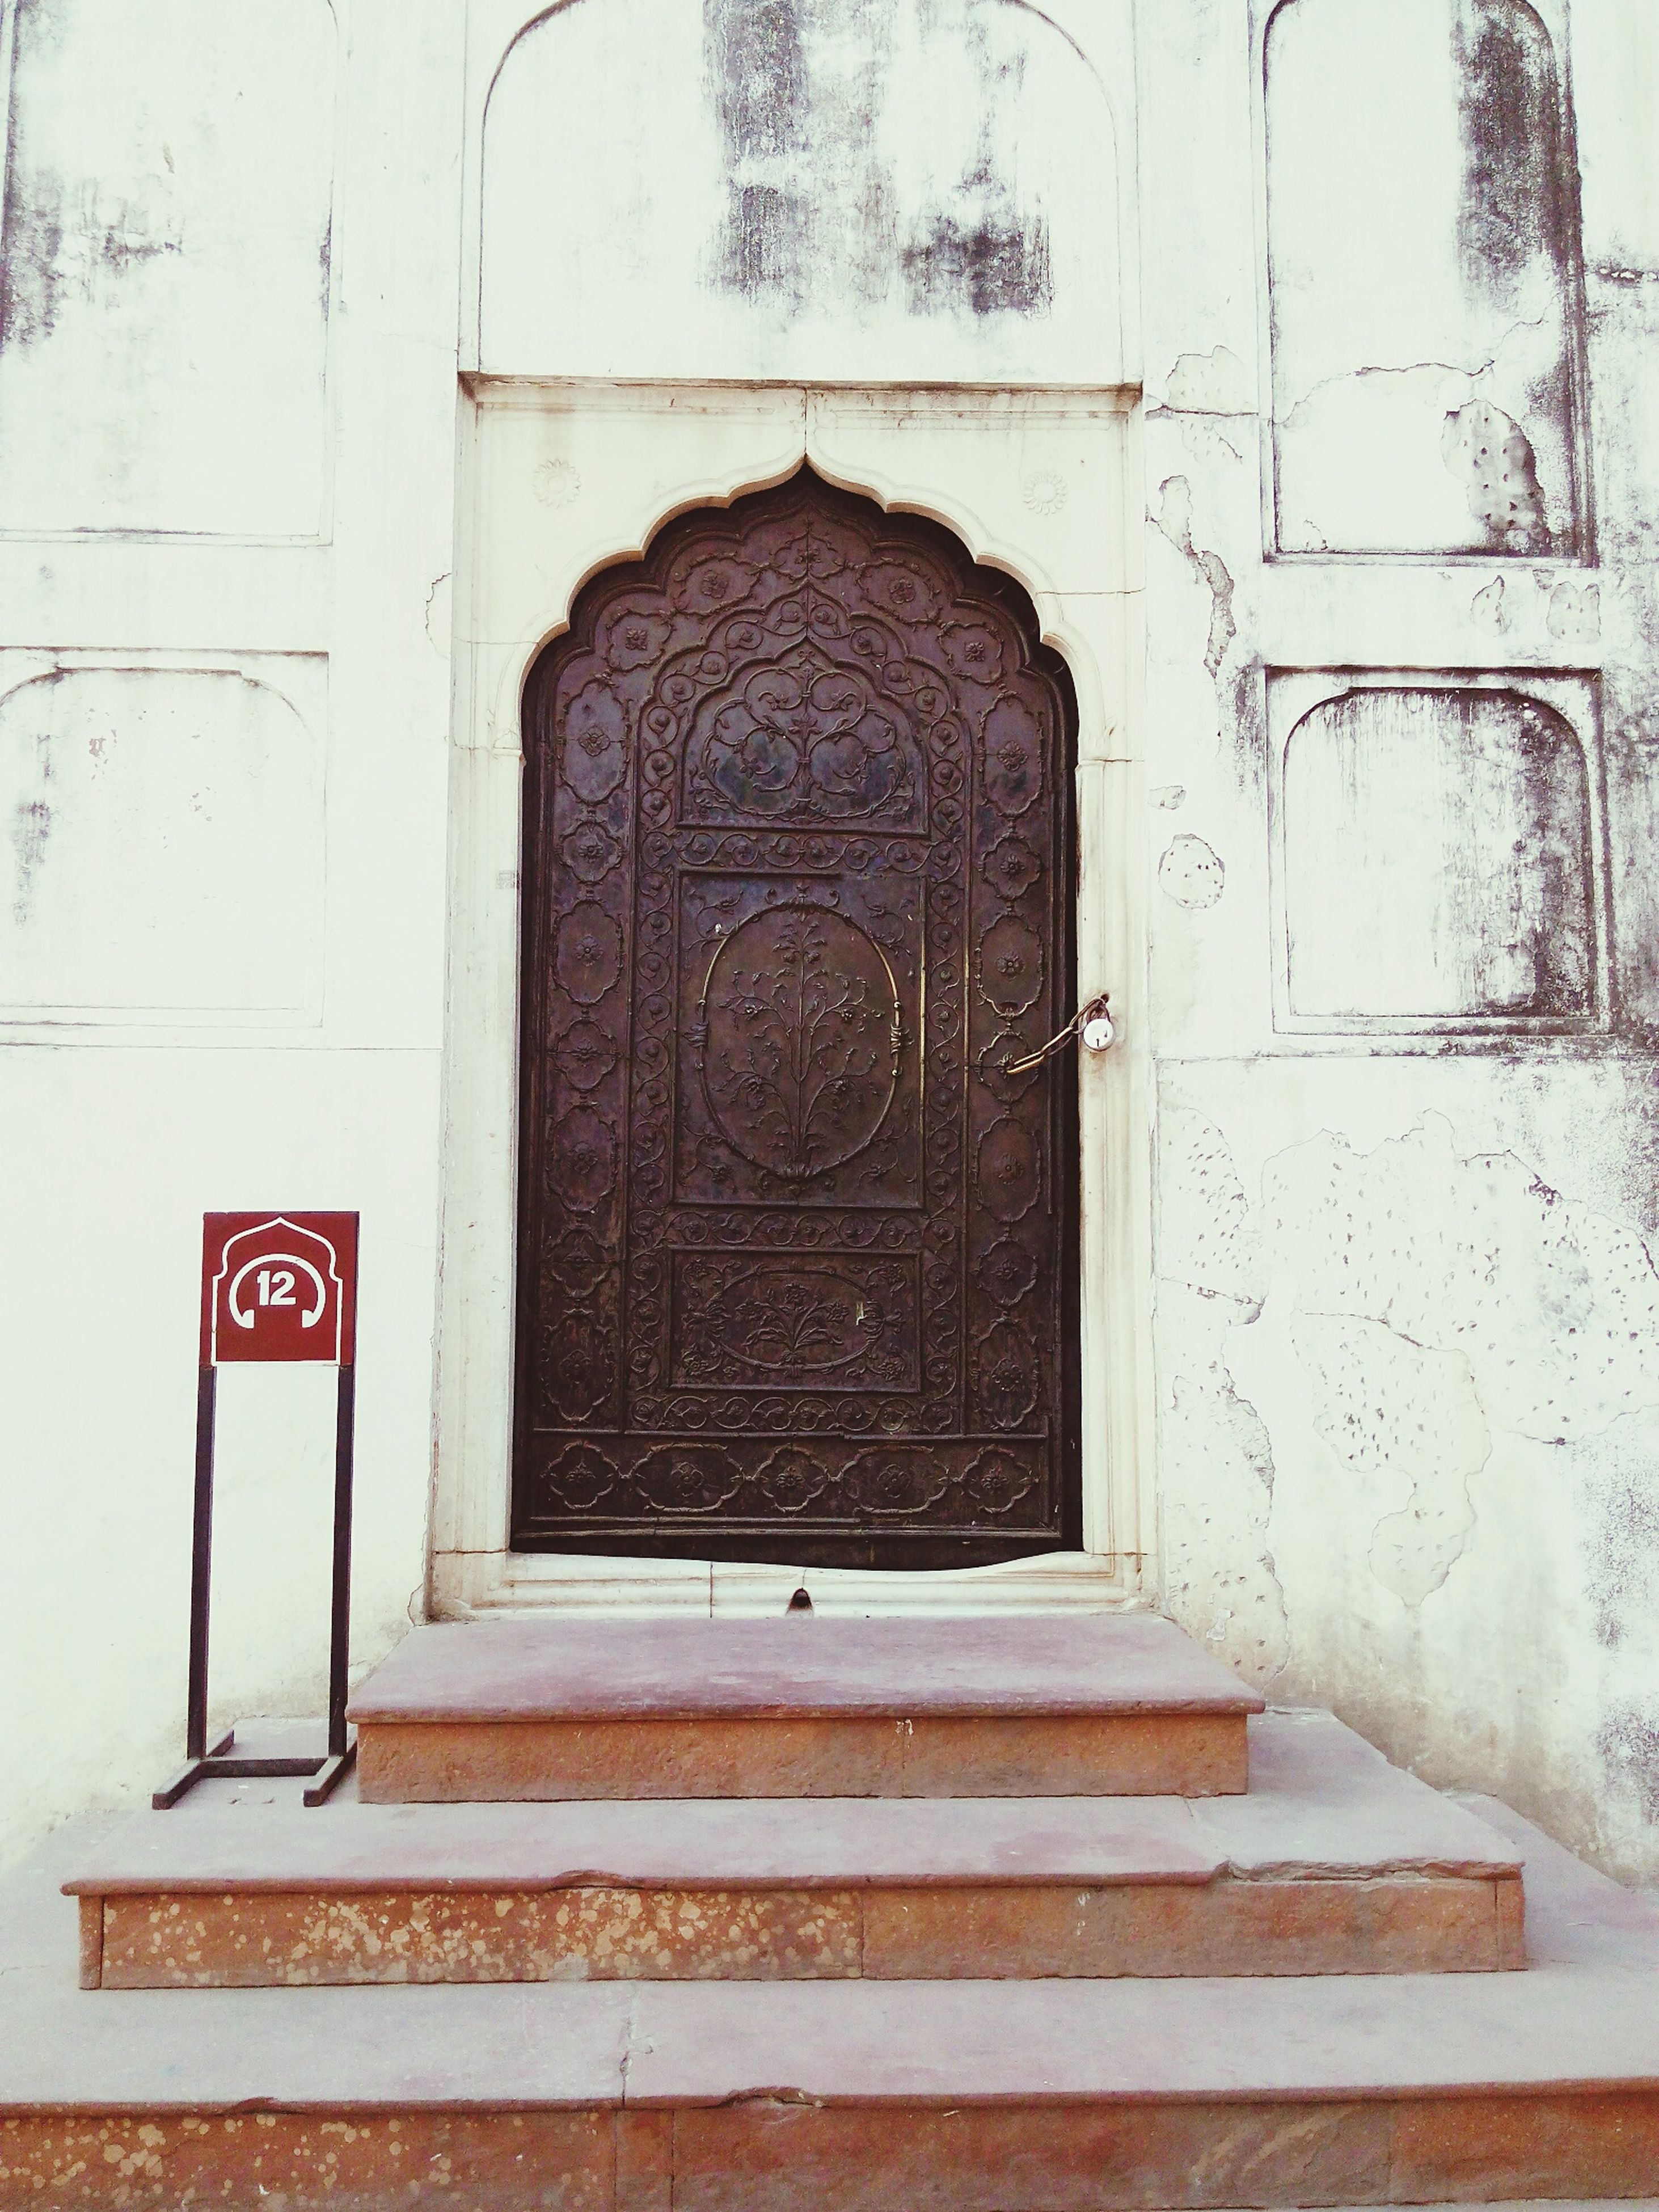 architecture, building exterior, door, built structure, closed, entrance, text, wall - building feature, communication, safety, western script, protection, outdoors, day, wall, facade, no people, old, security, red